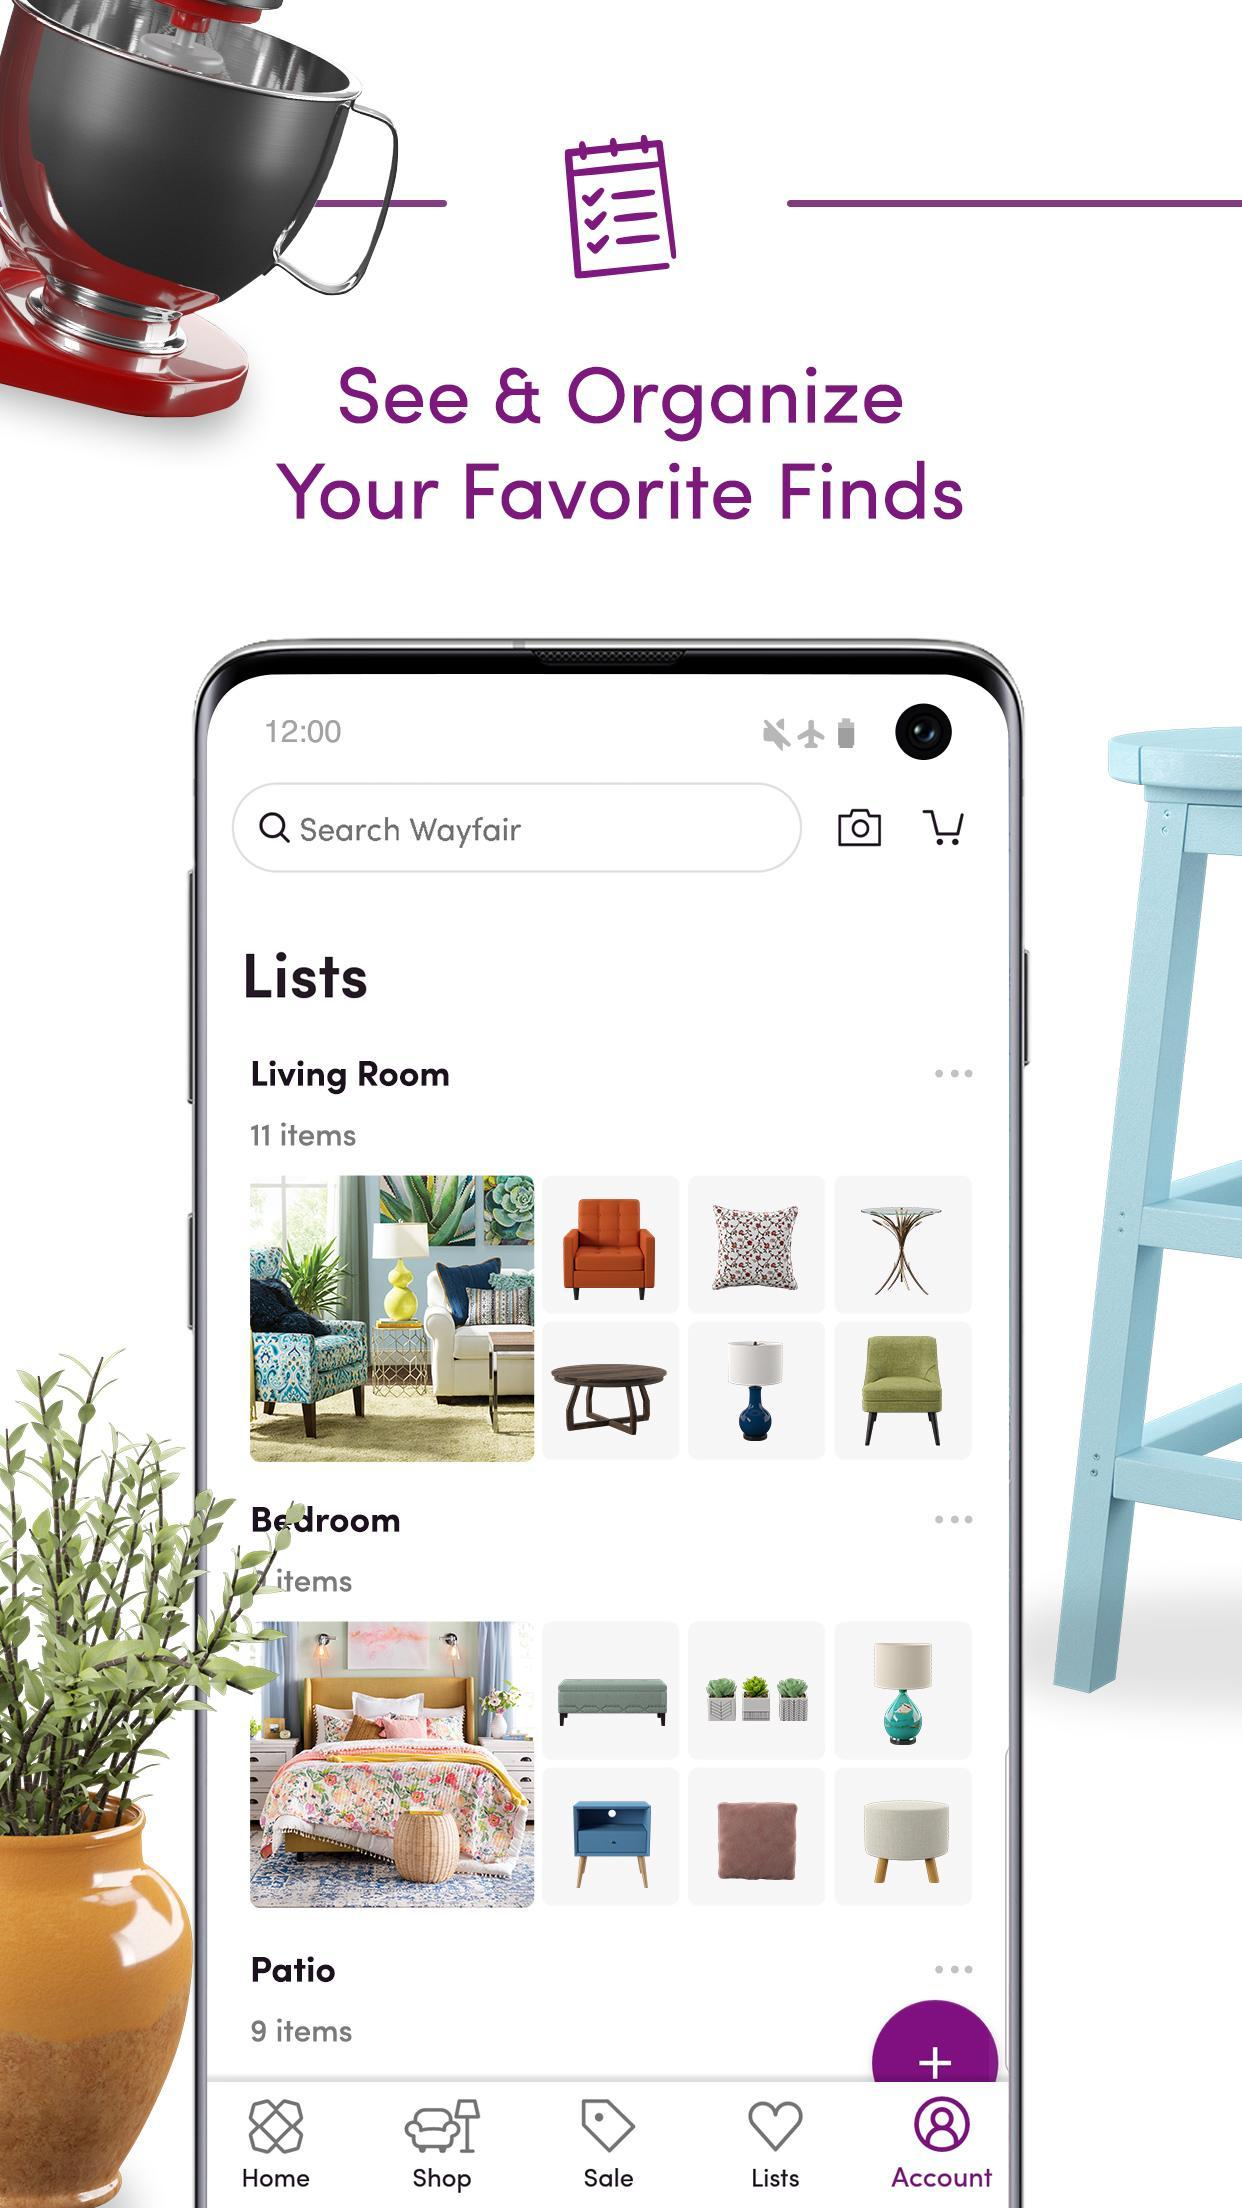 Wayfair Shop All Things Home 5.2.4 Screenshot 5